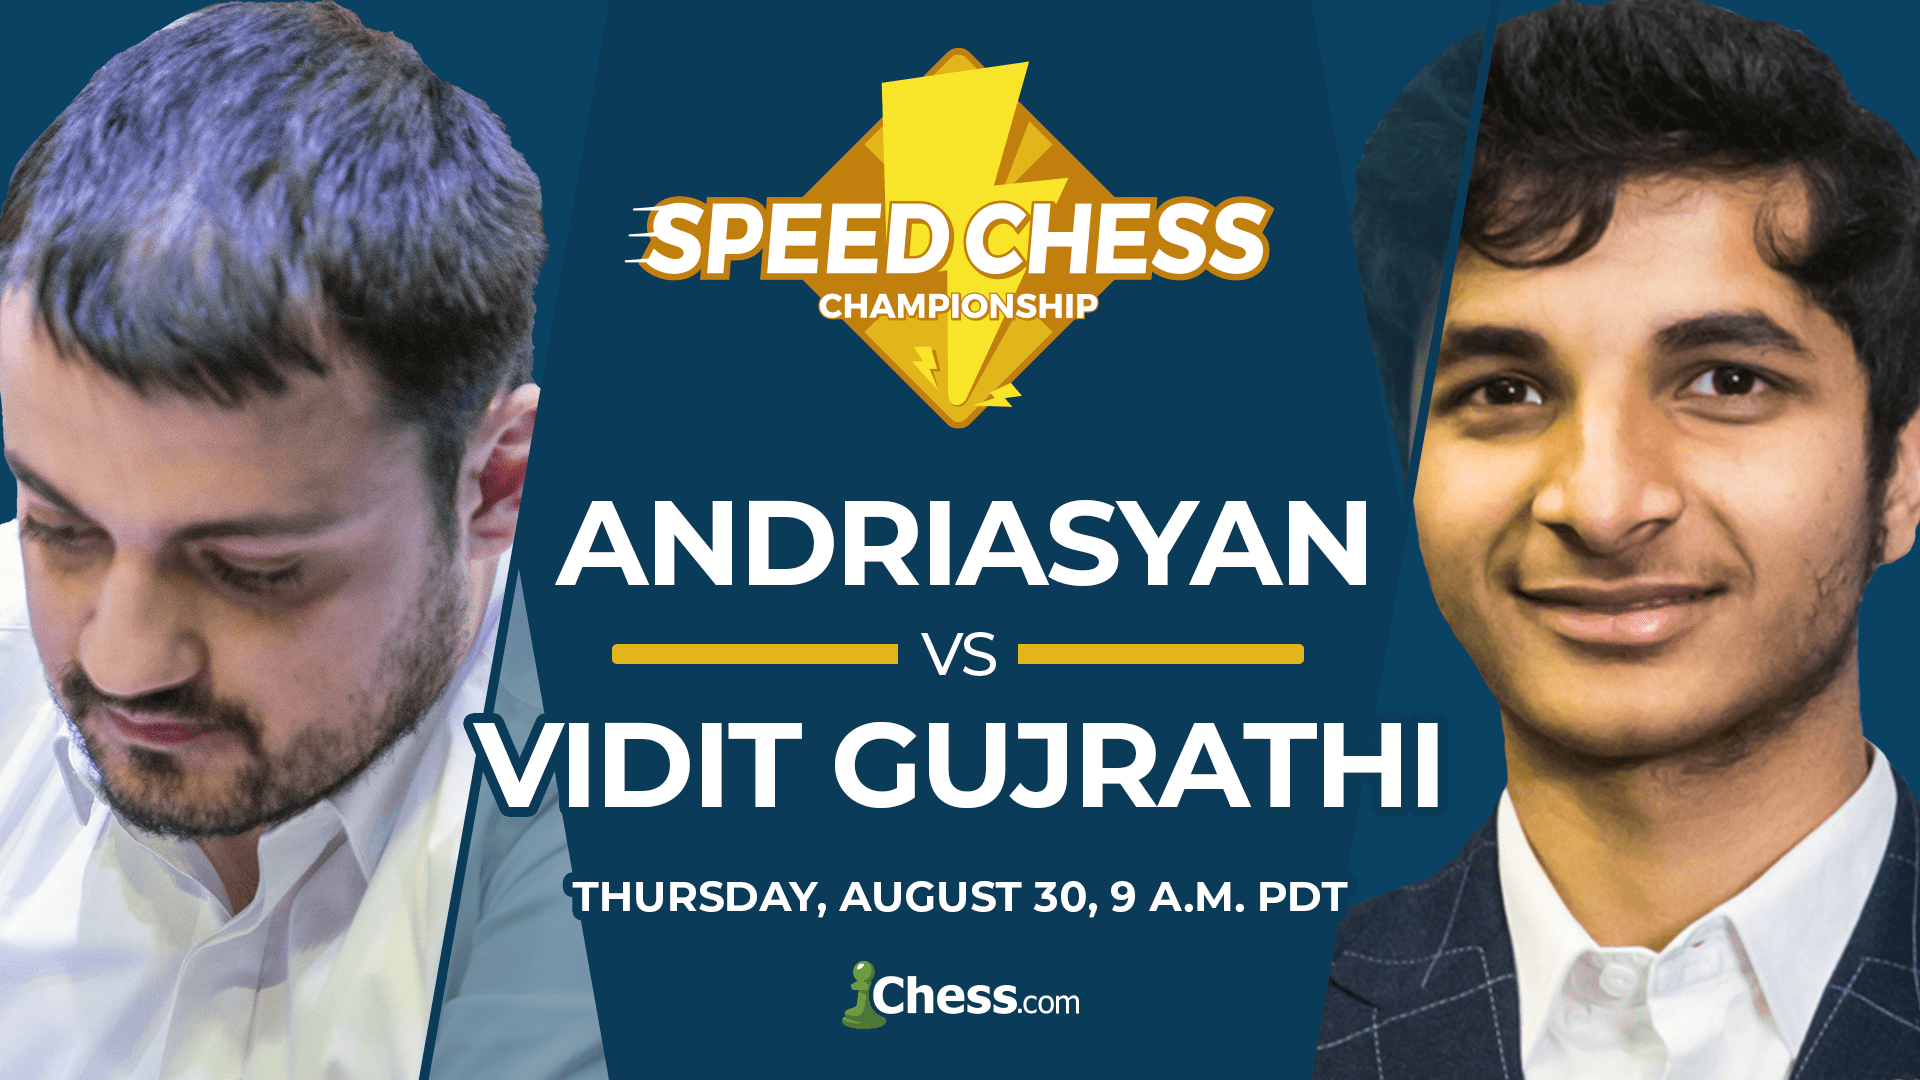 Andriasyan vs Vidit Gujrathi: Thursday, August 30, 9 a.m. PDT